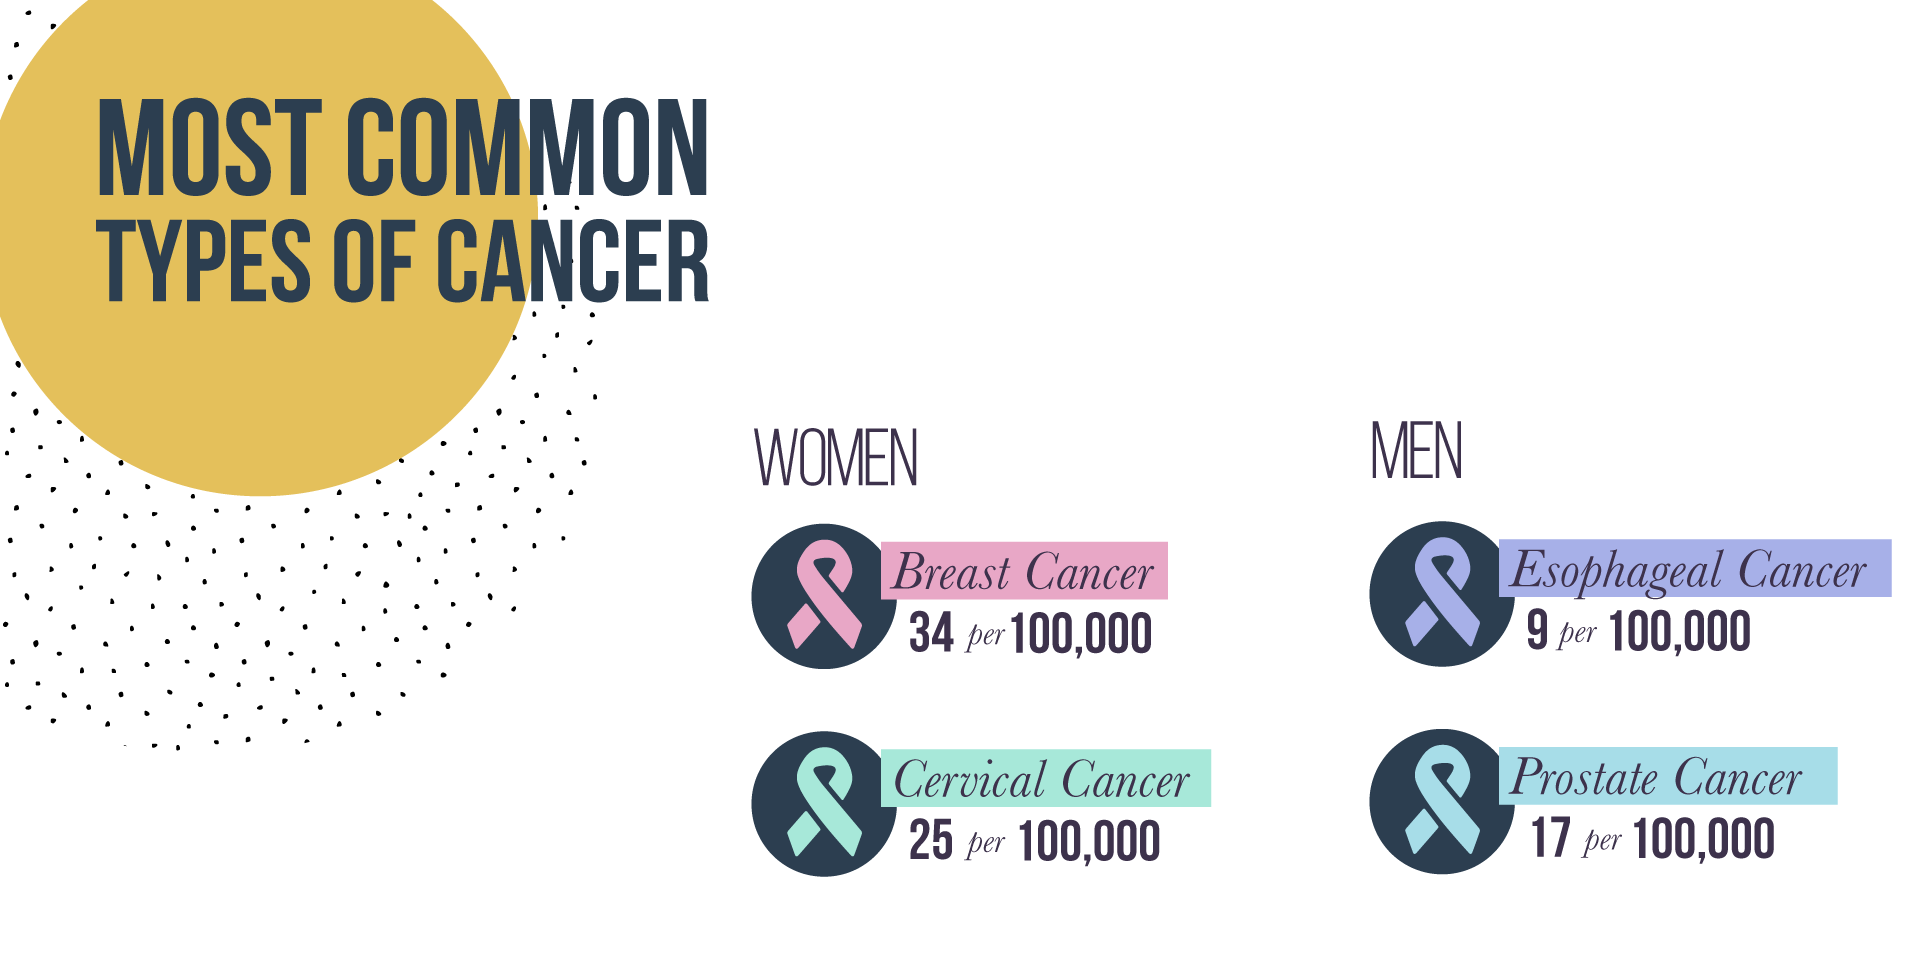 Cancer-Infographic-05